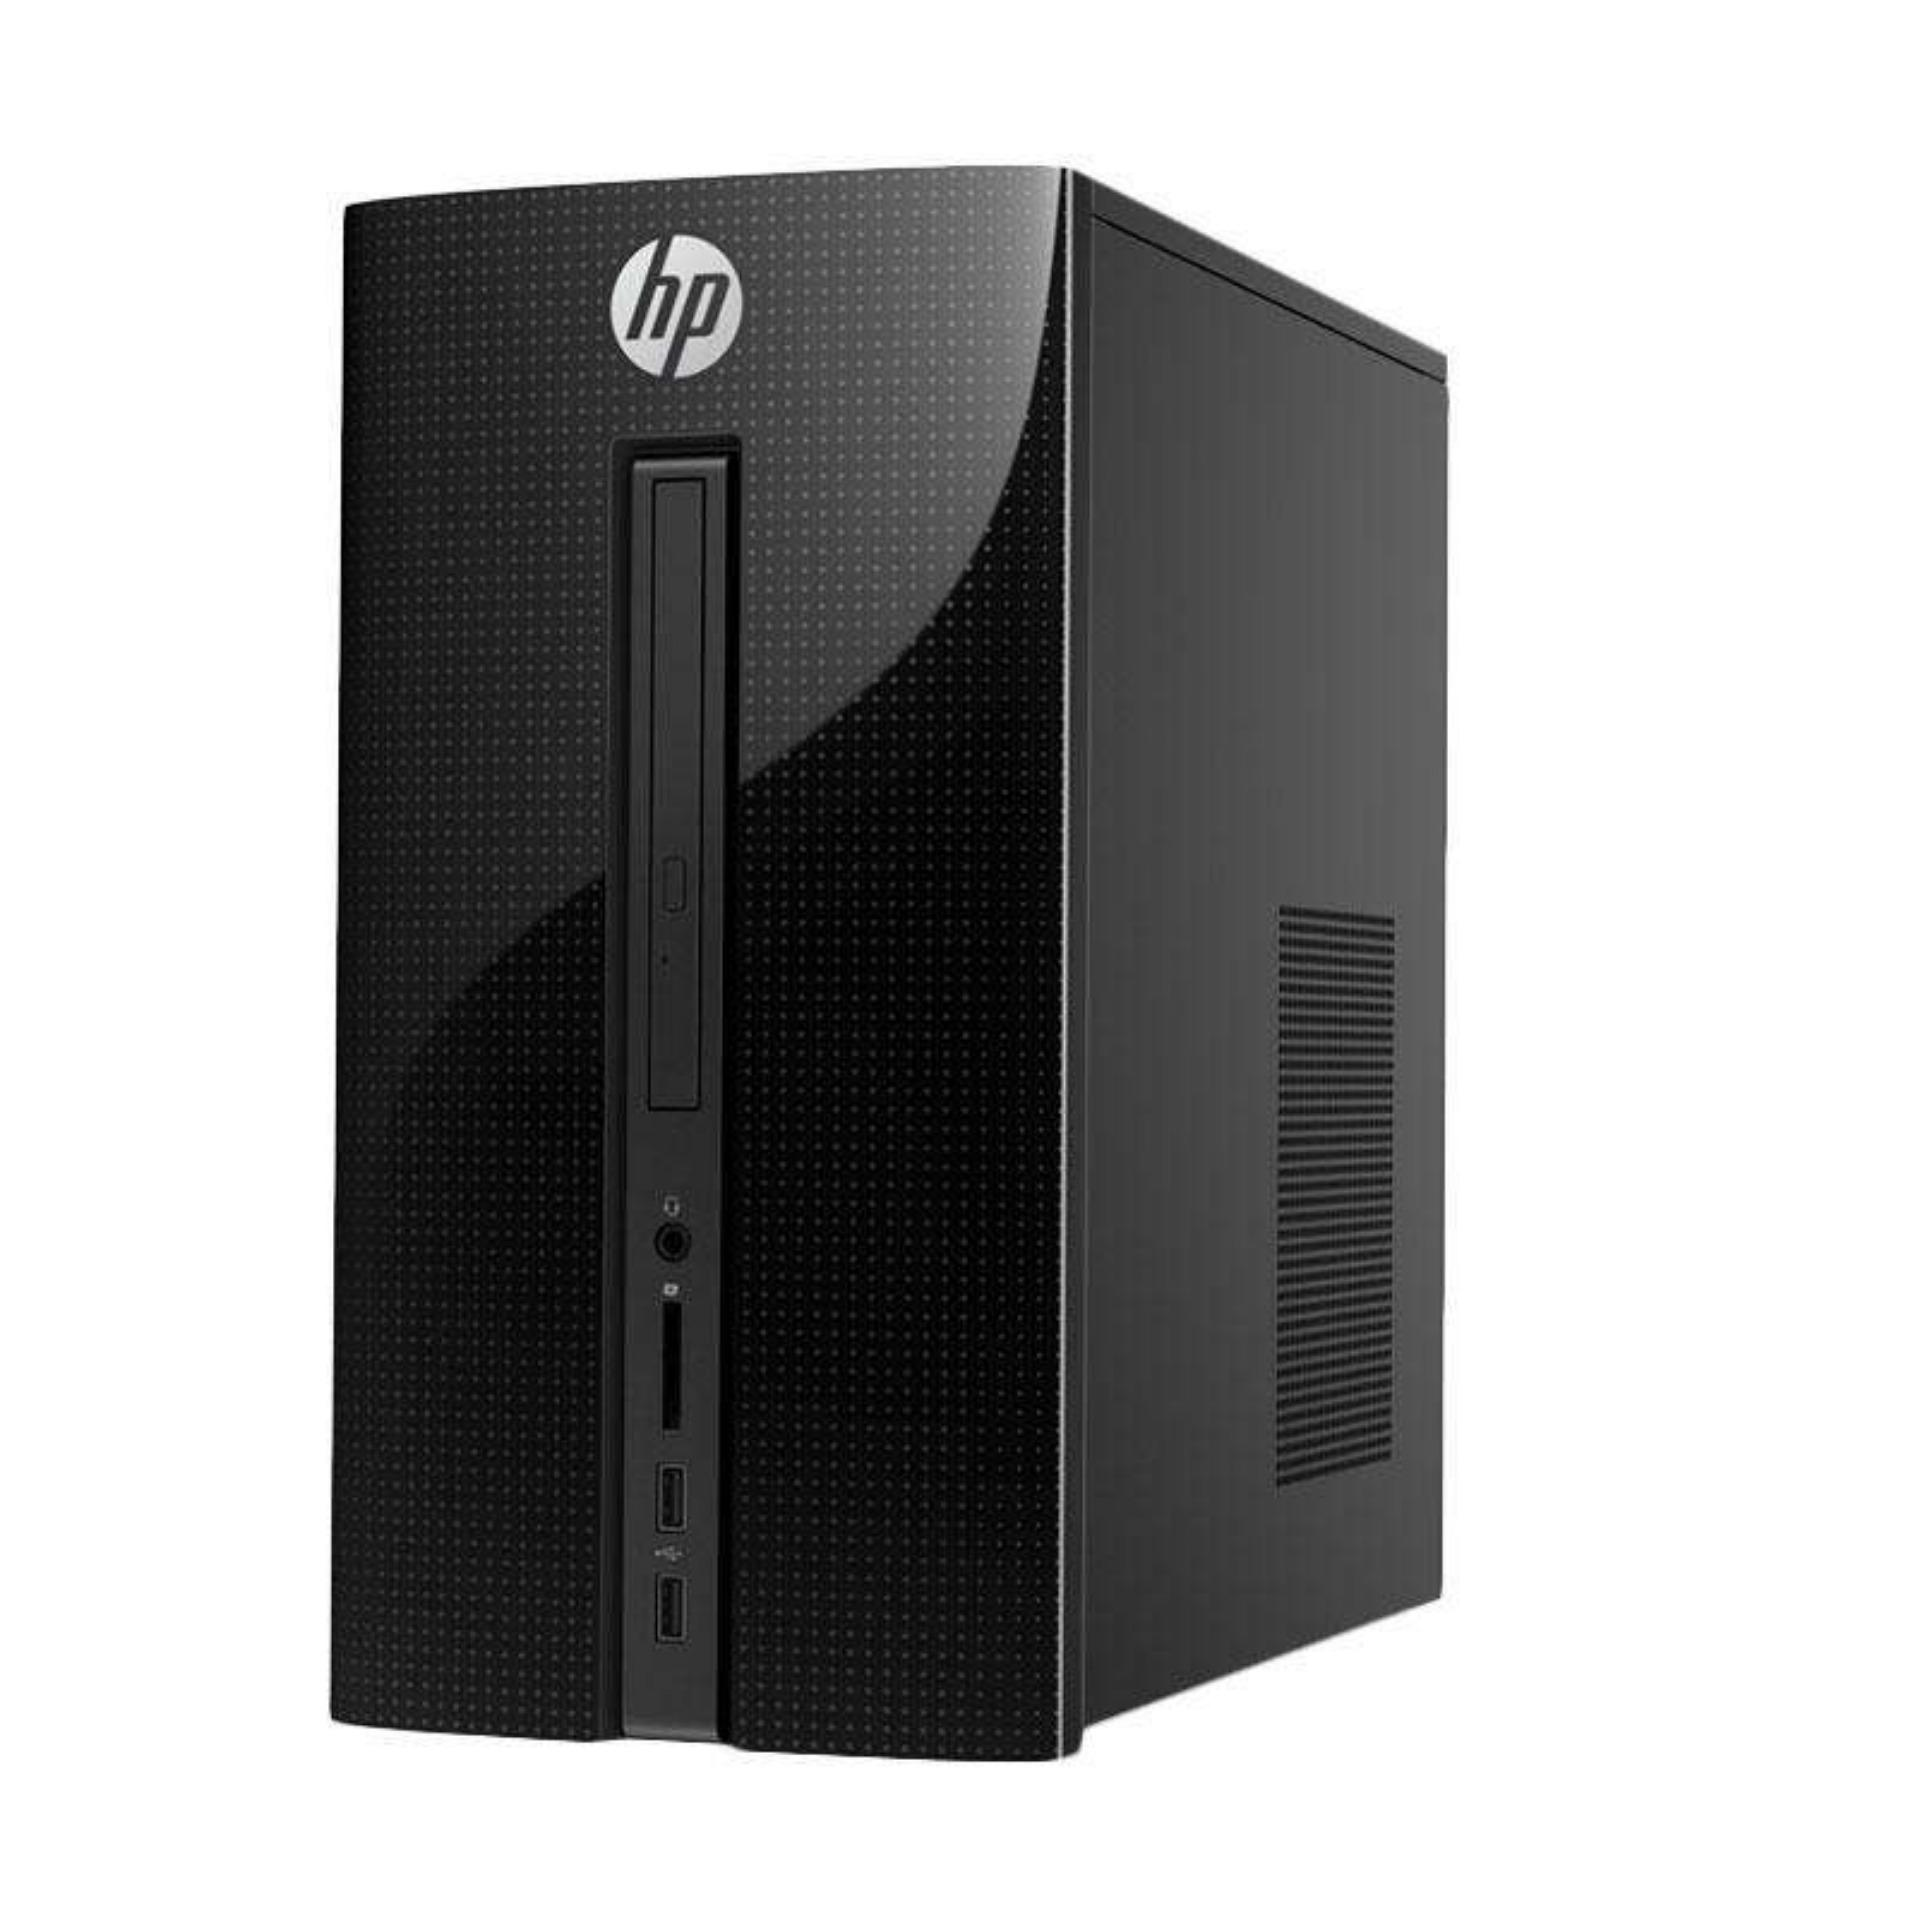 Hp Pc All In One 24 B215d Intel Core I5 7400 4gb 1tb Vga Lenovo Aio 510 22ish 0fid White P016d Resmi Intelrdual G4400t Ddr44gb